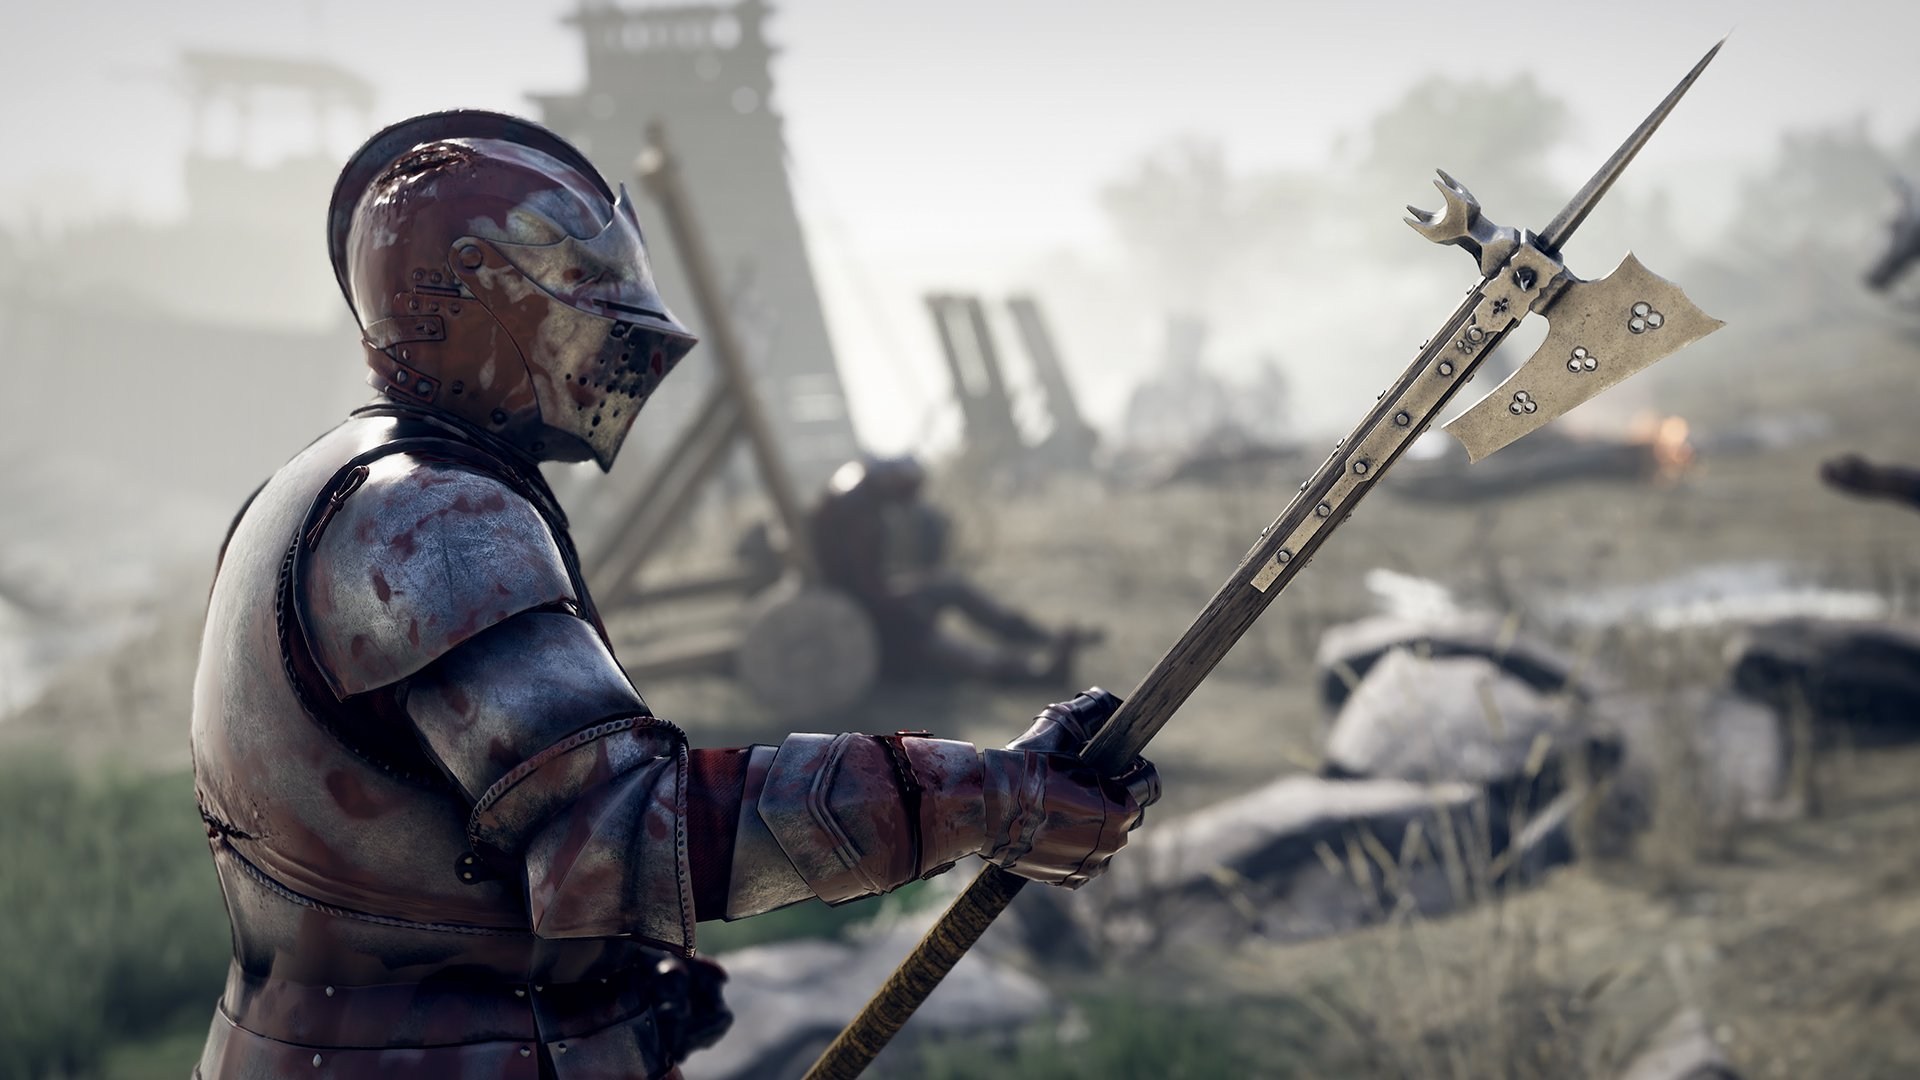 1v1 Duels is an unofficial game mode in Mordhau, though the developers have noted plans to add it in the near future.